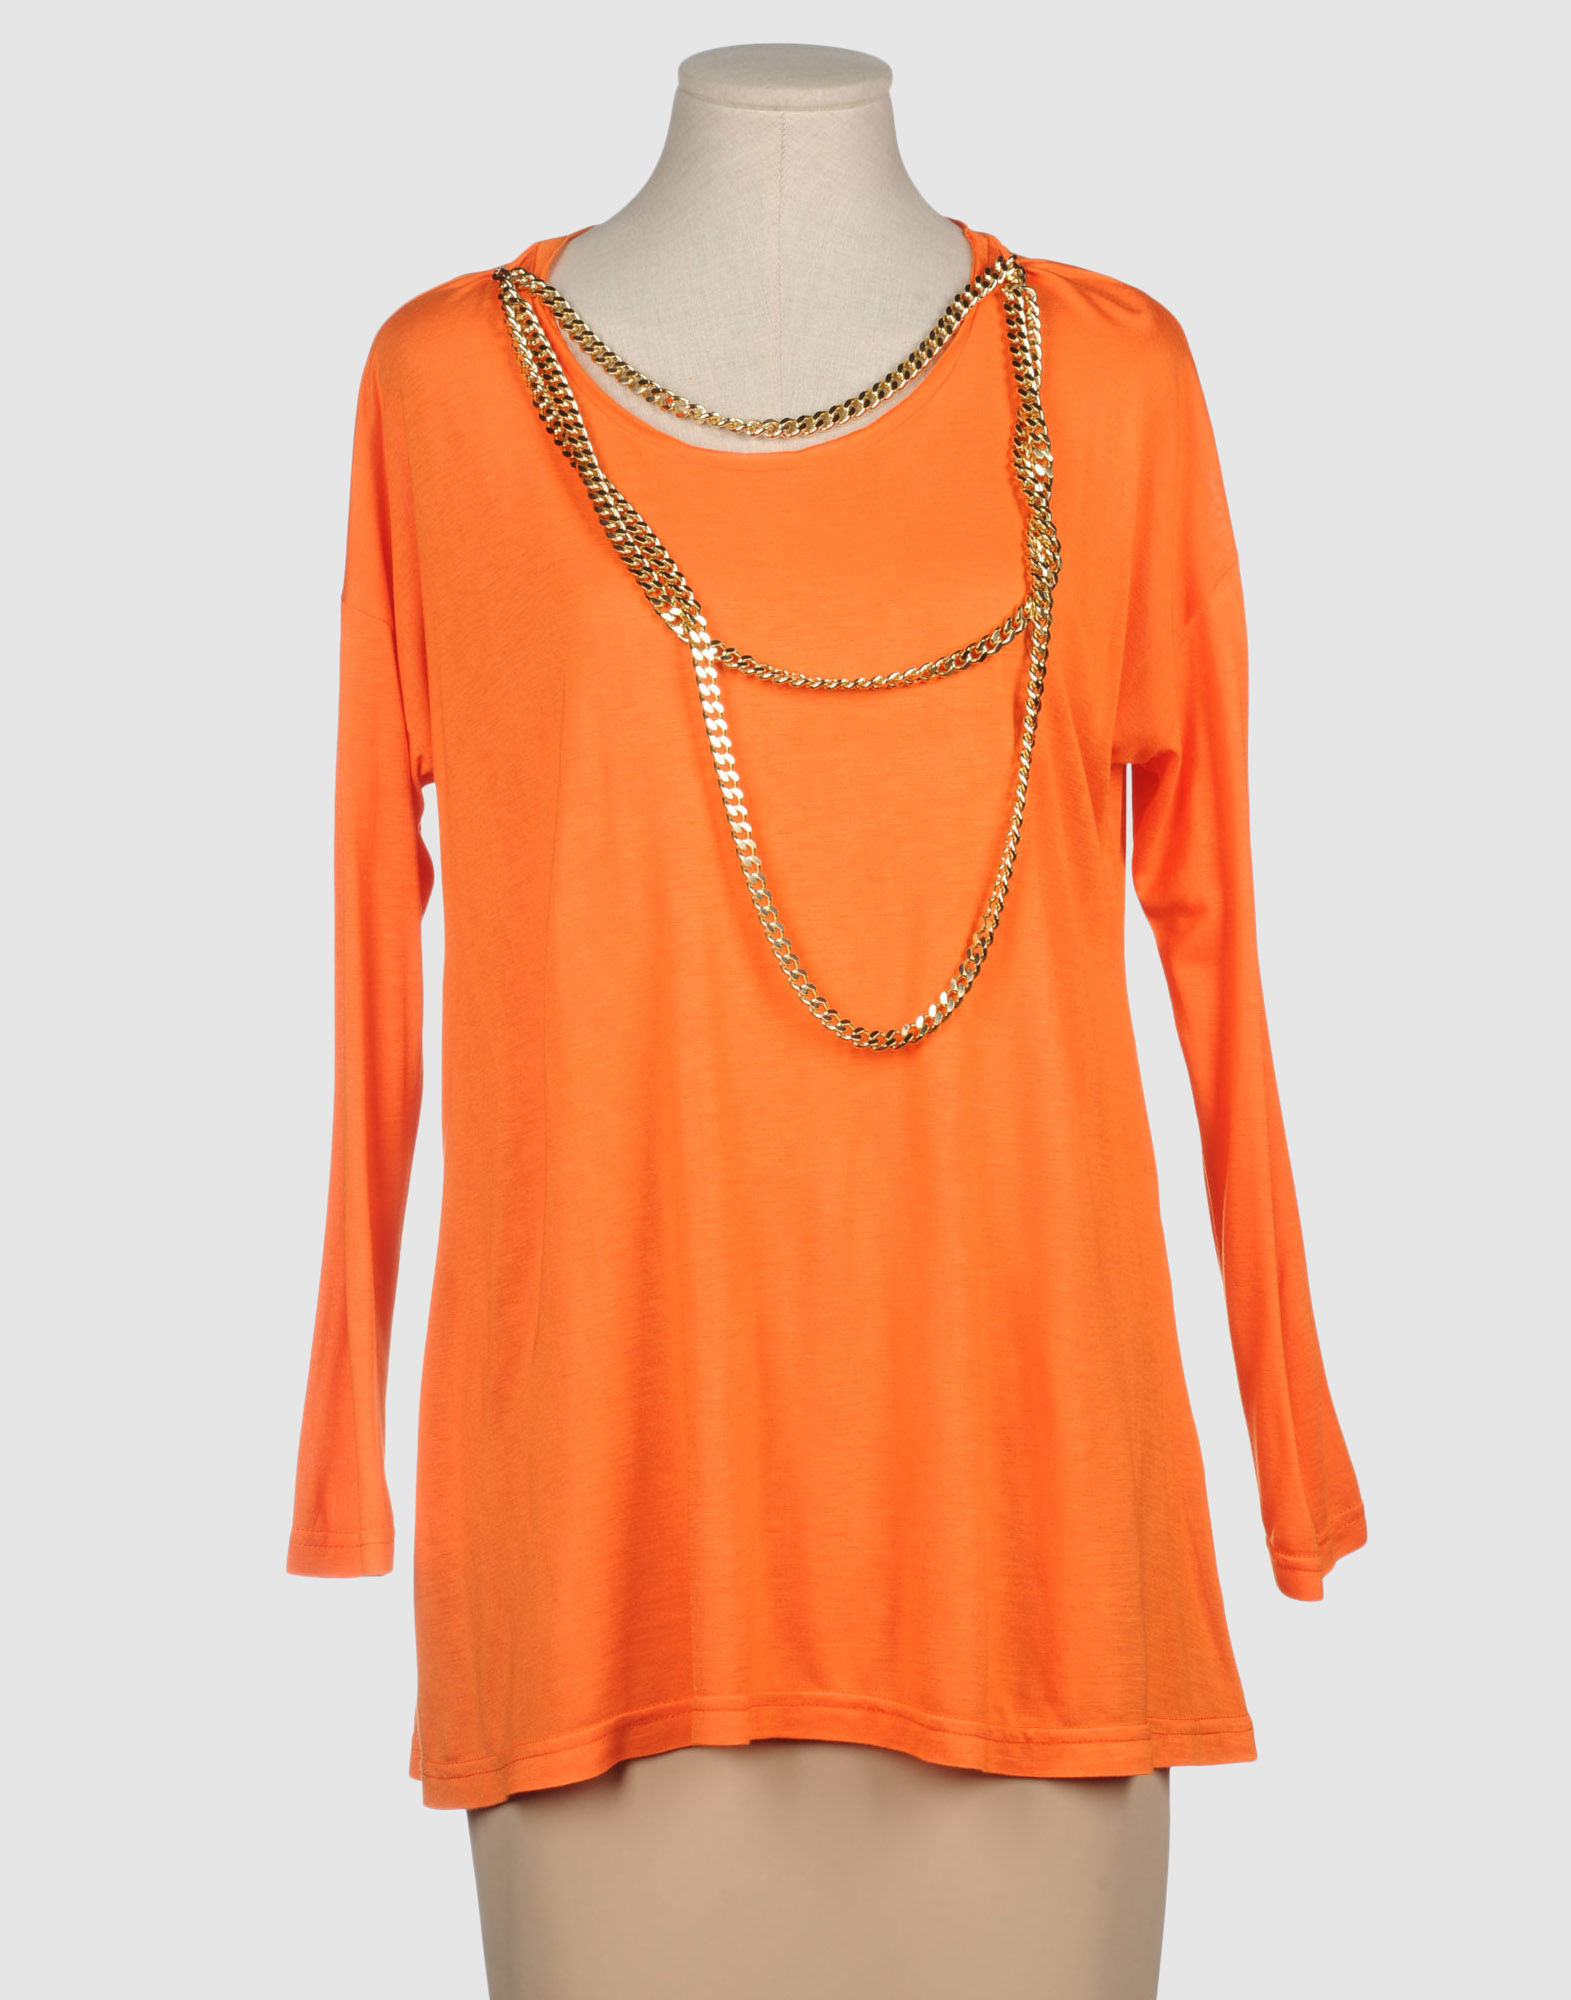 Charlott Long Sleeve T Shirt In Orange Yellow Lyst